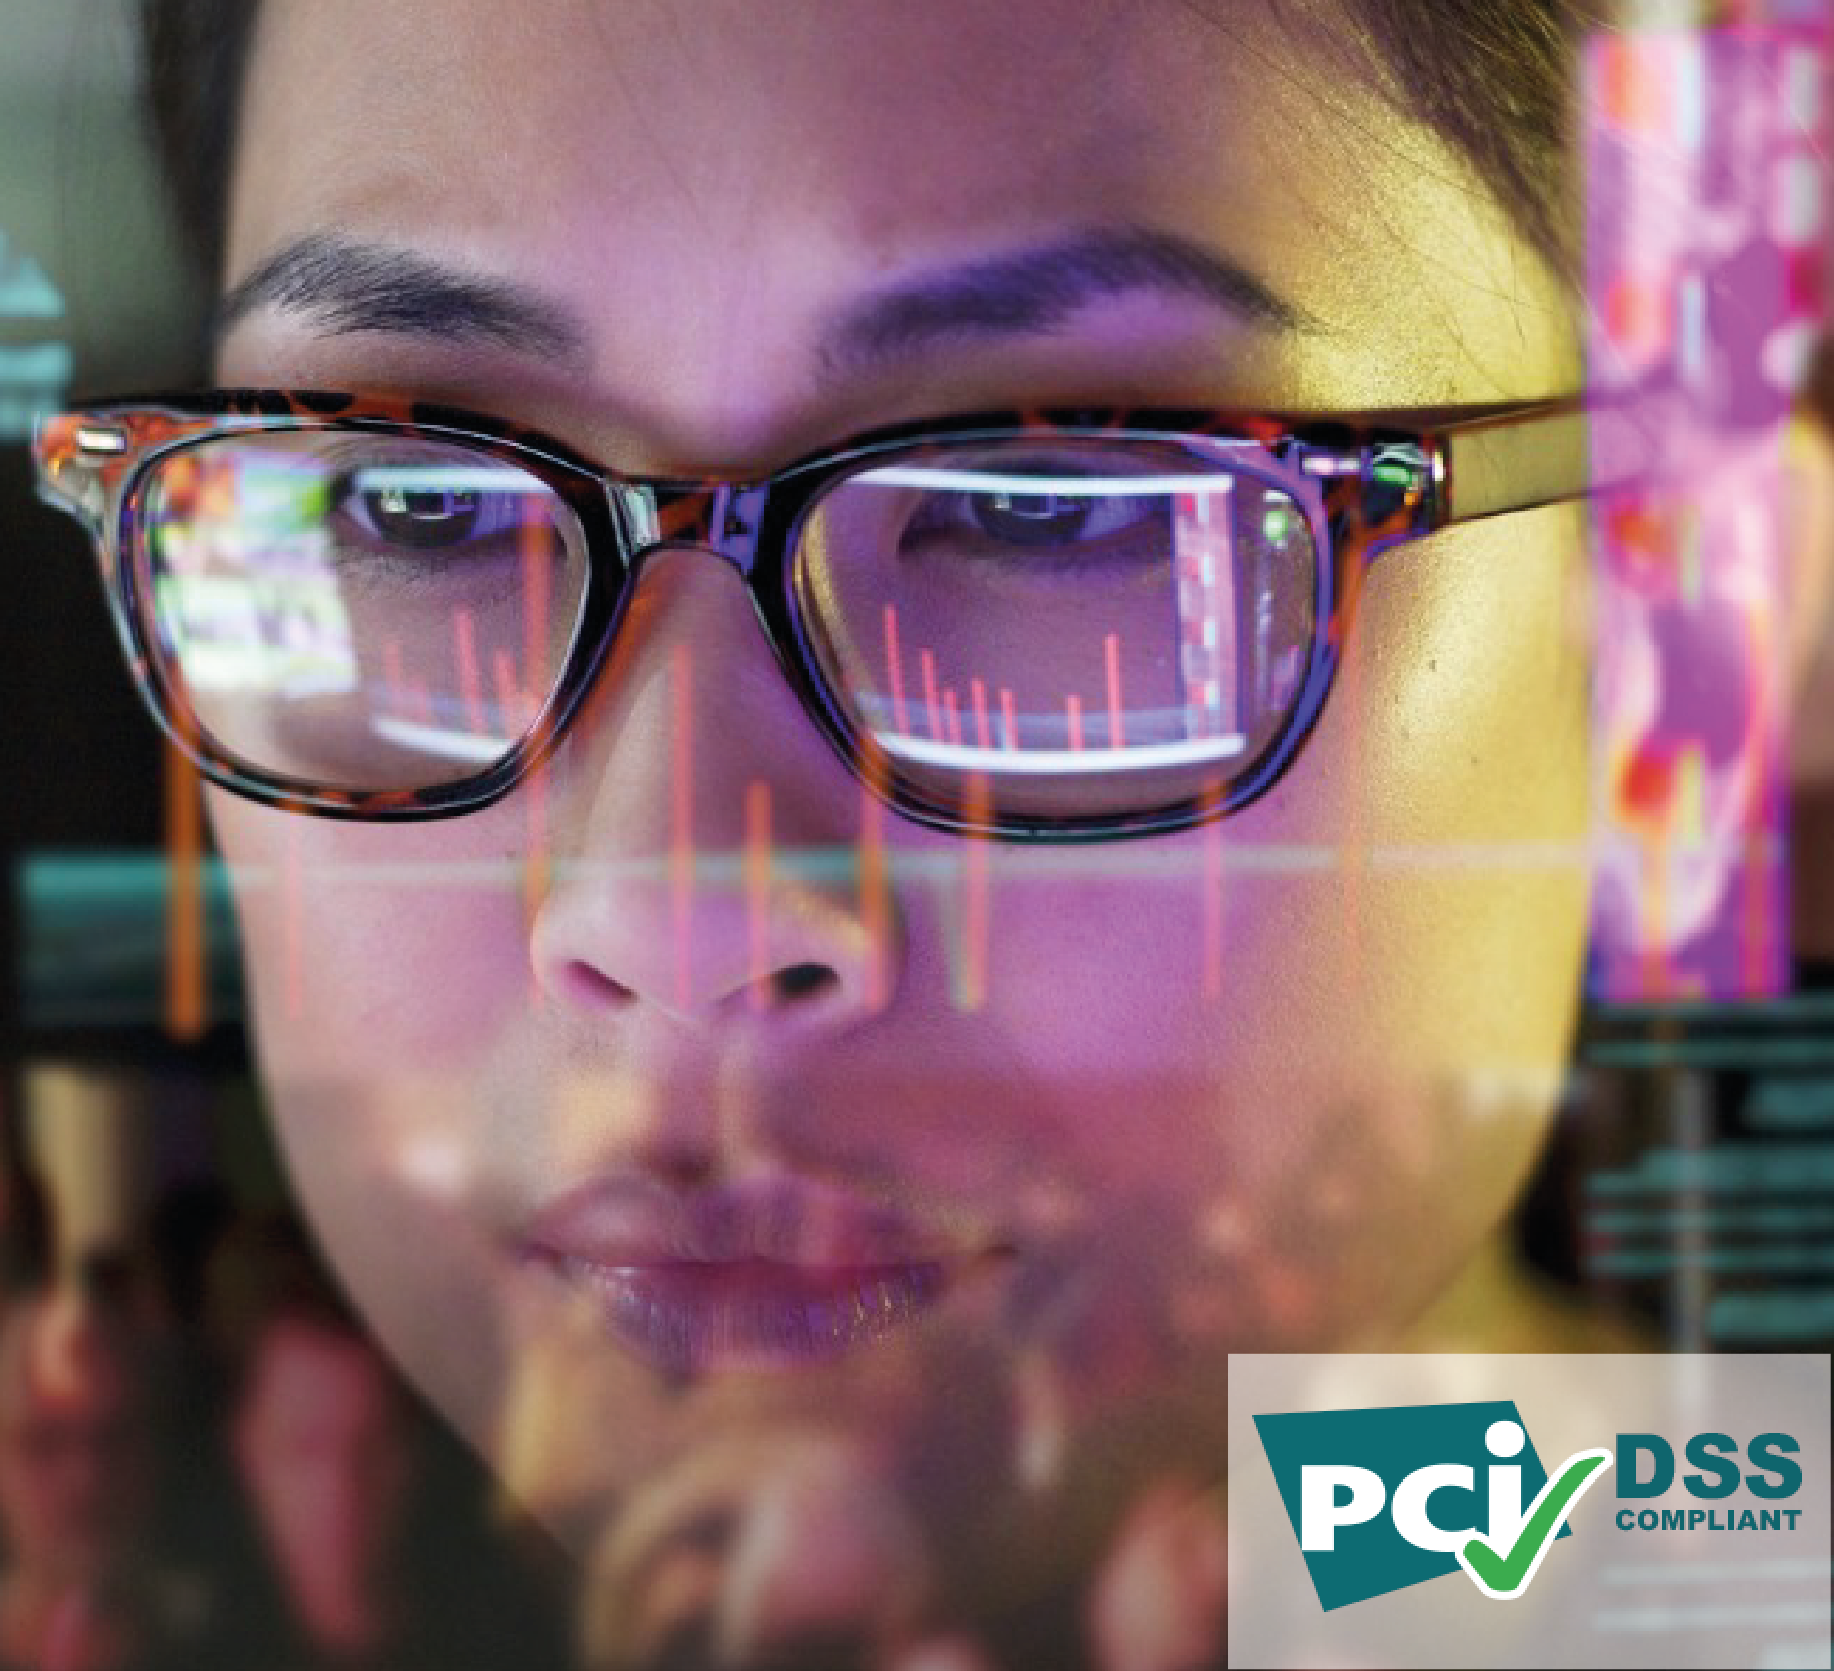 Gresham strengthens cyber-security posture with PCI DSS 3.2 accreditation